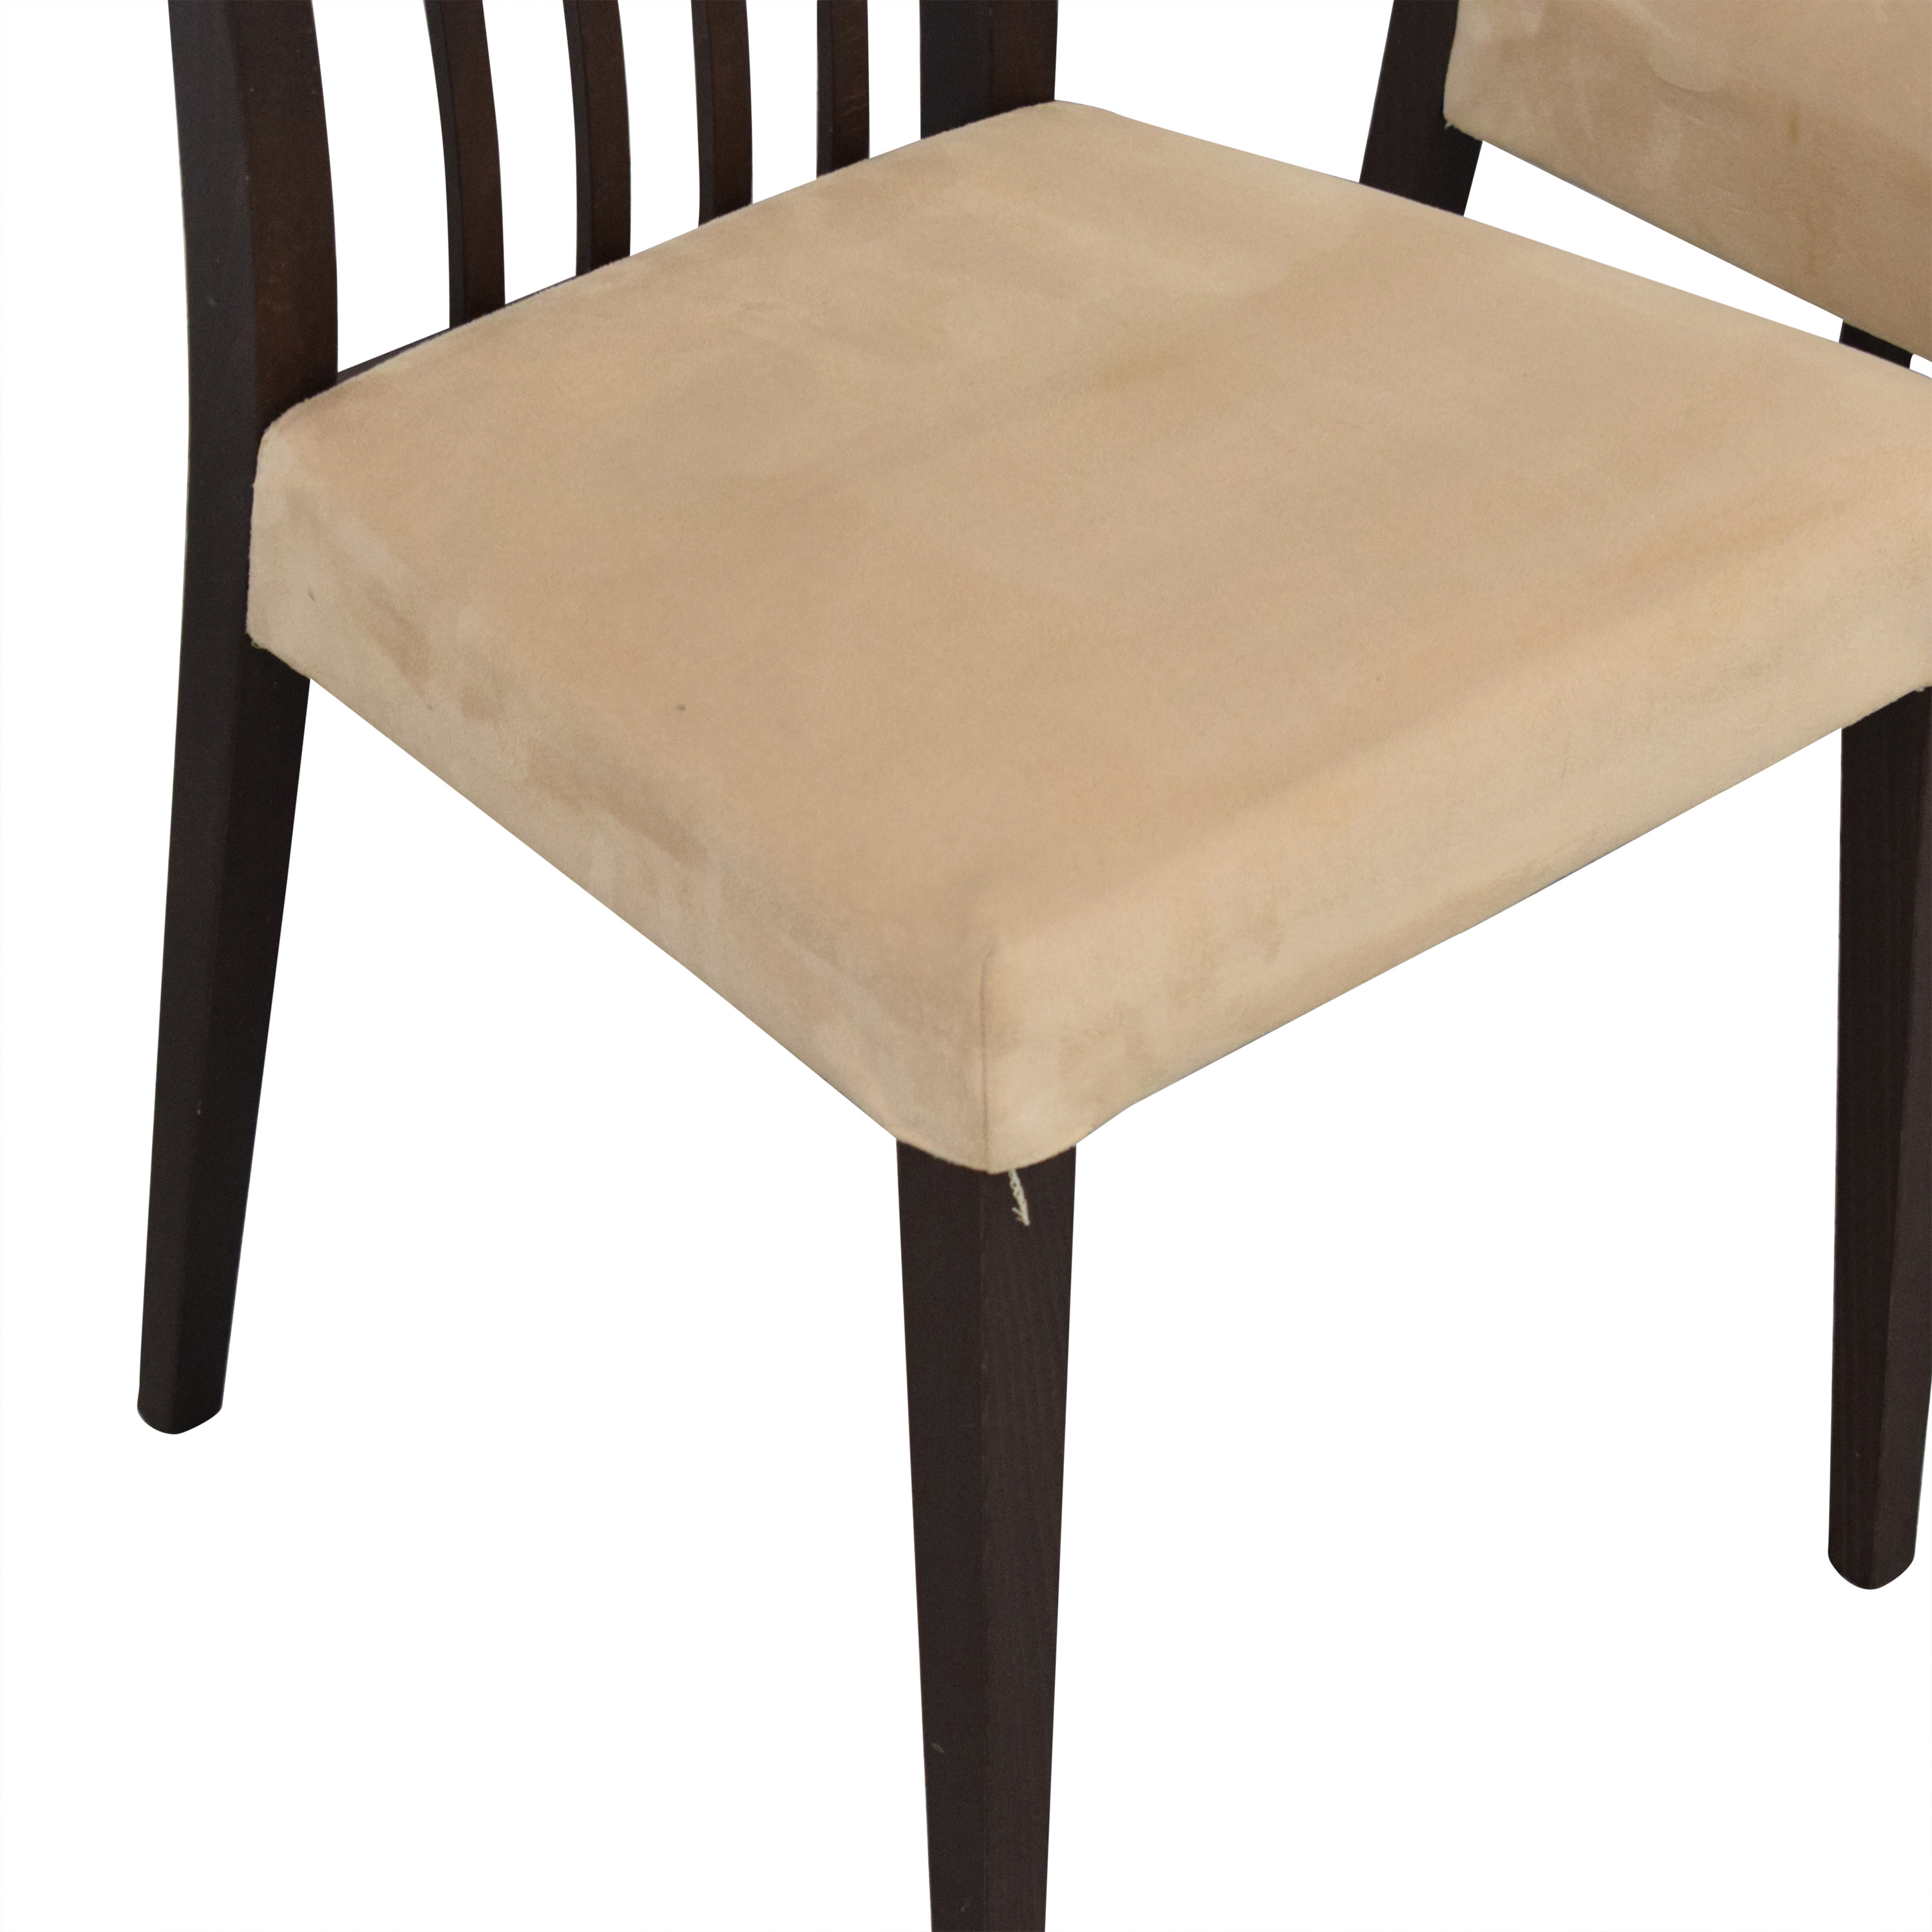 Calligaris Calligaris Upholstered Dining Chairs ct